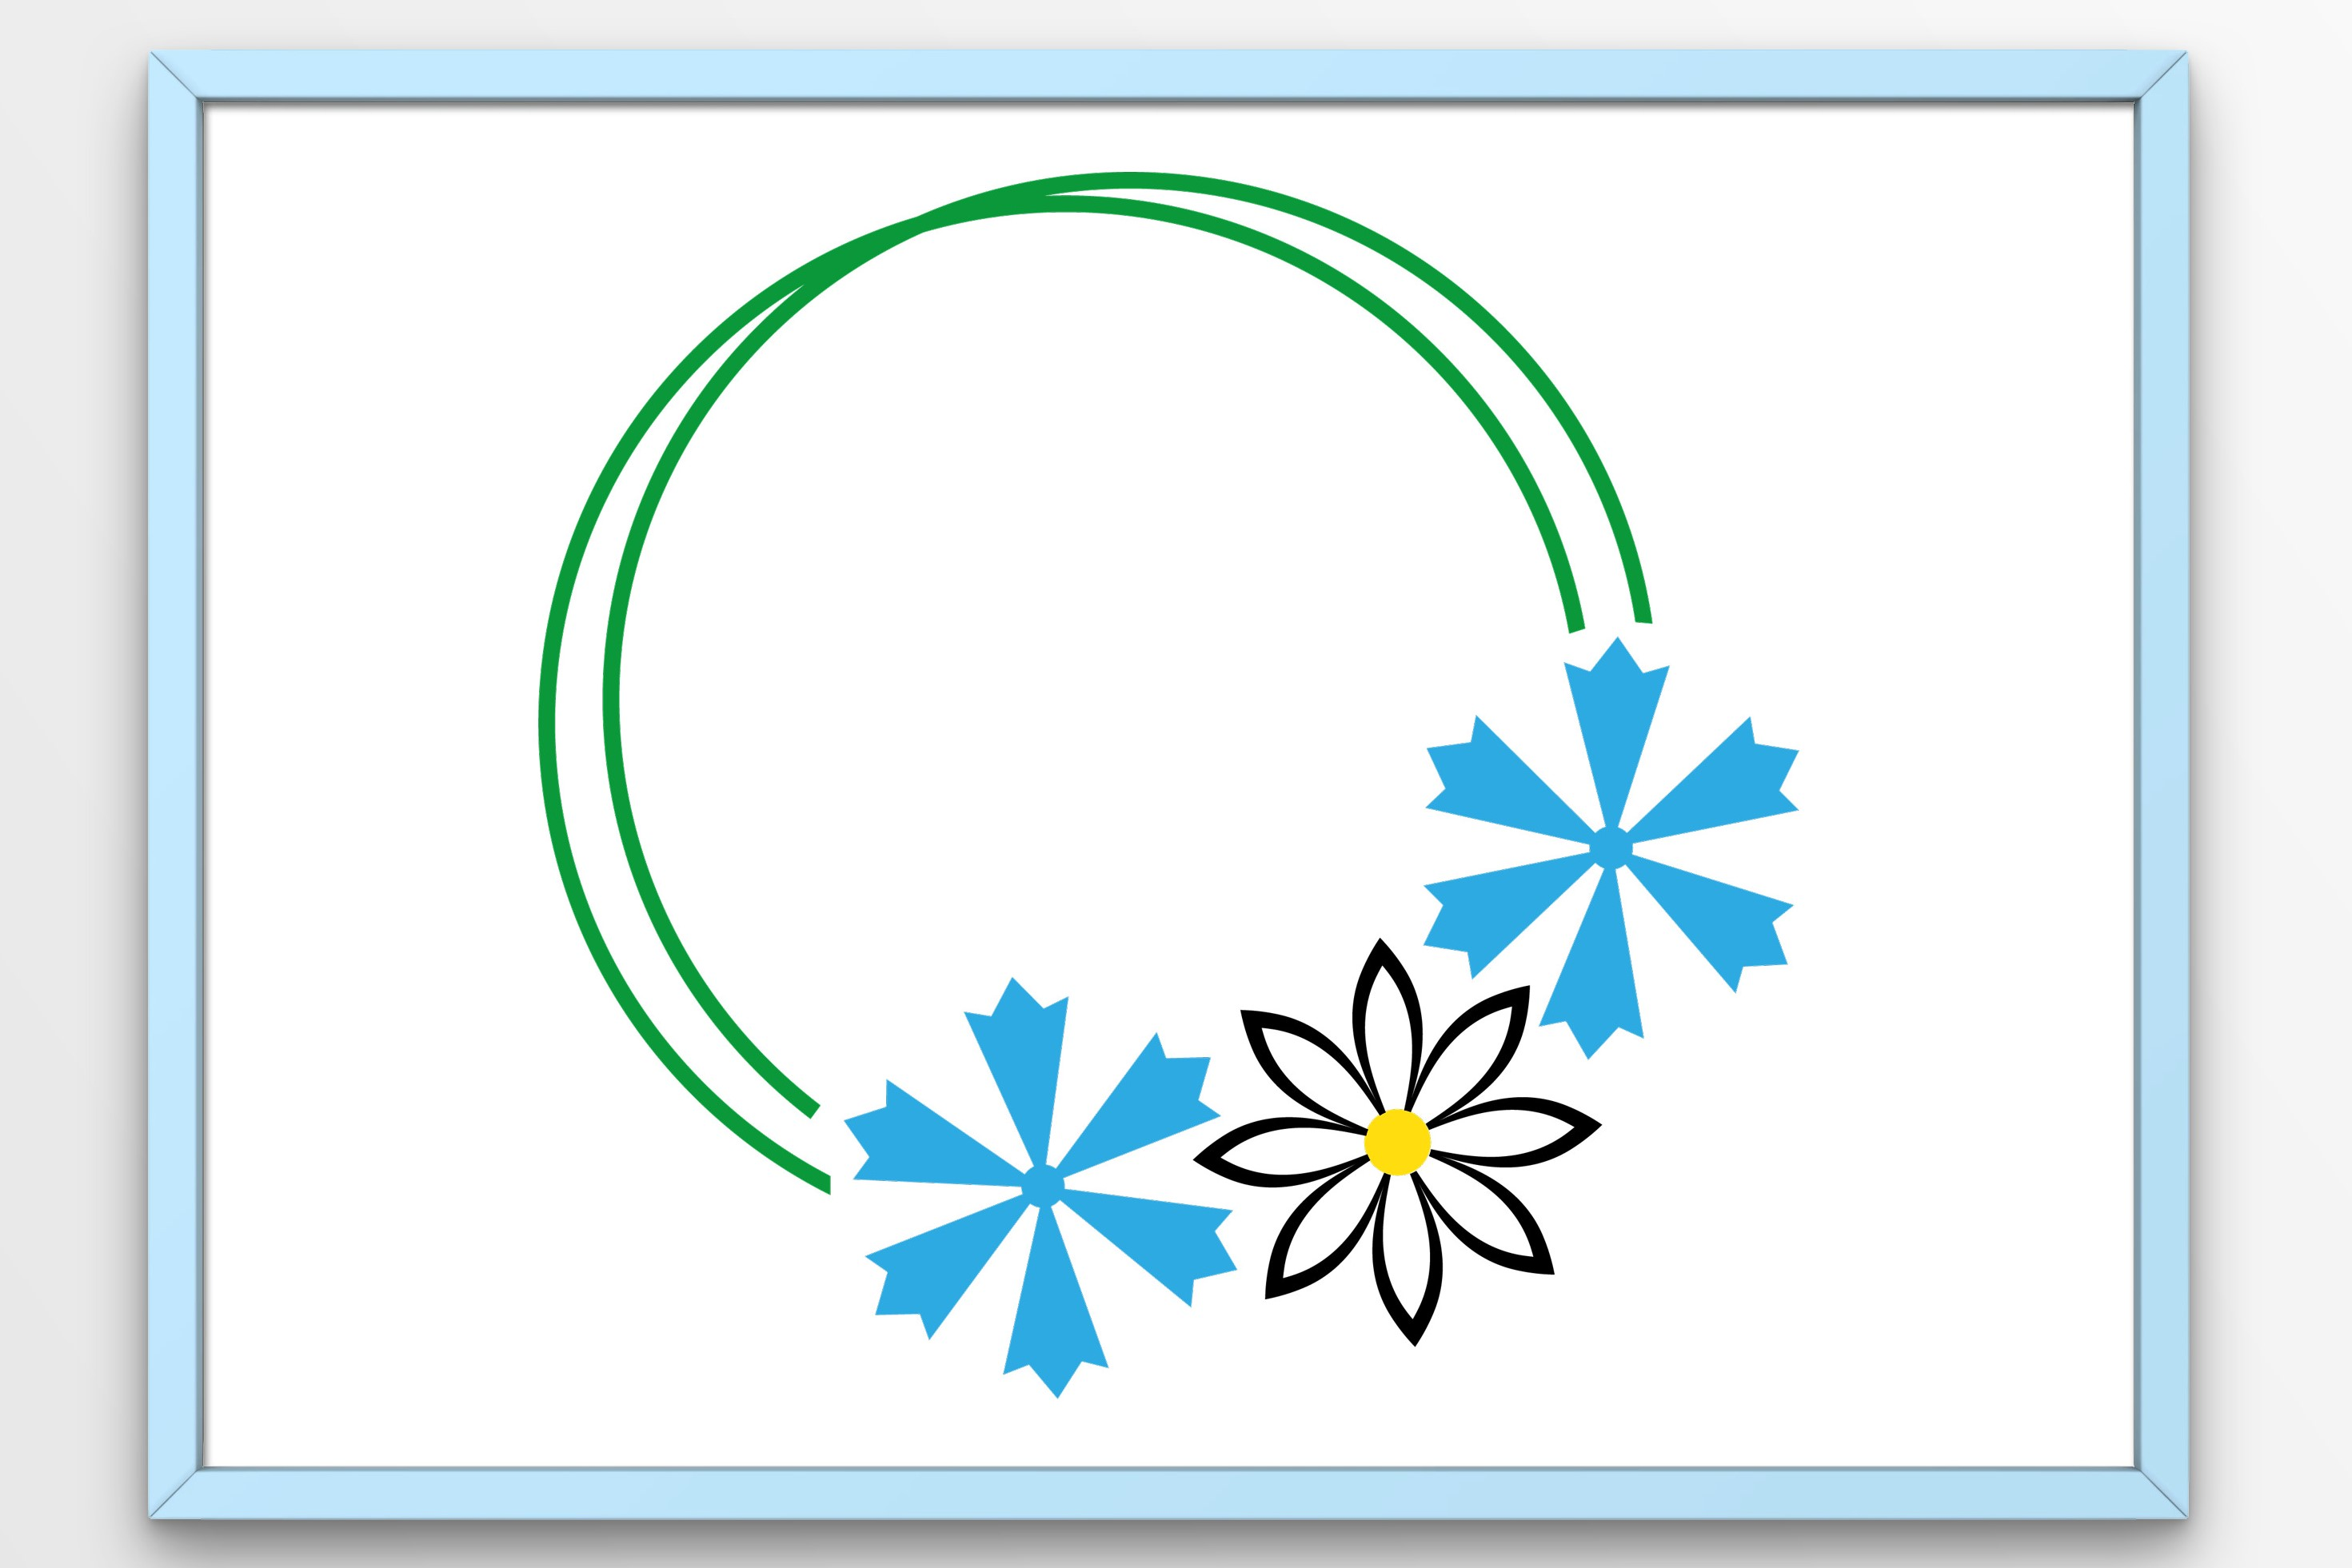 Download Free Flowers Wreath Graphic By Tanja Dianova Creative Fabrica for Cricut Explore, Silhouette and other cutting machines.